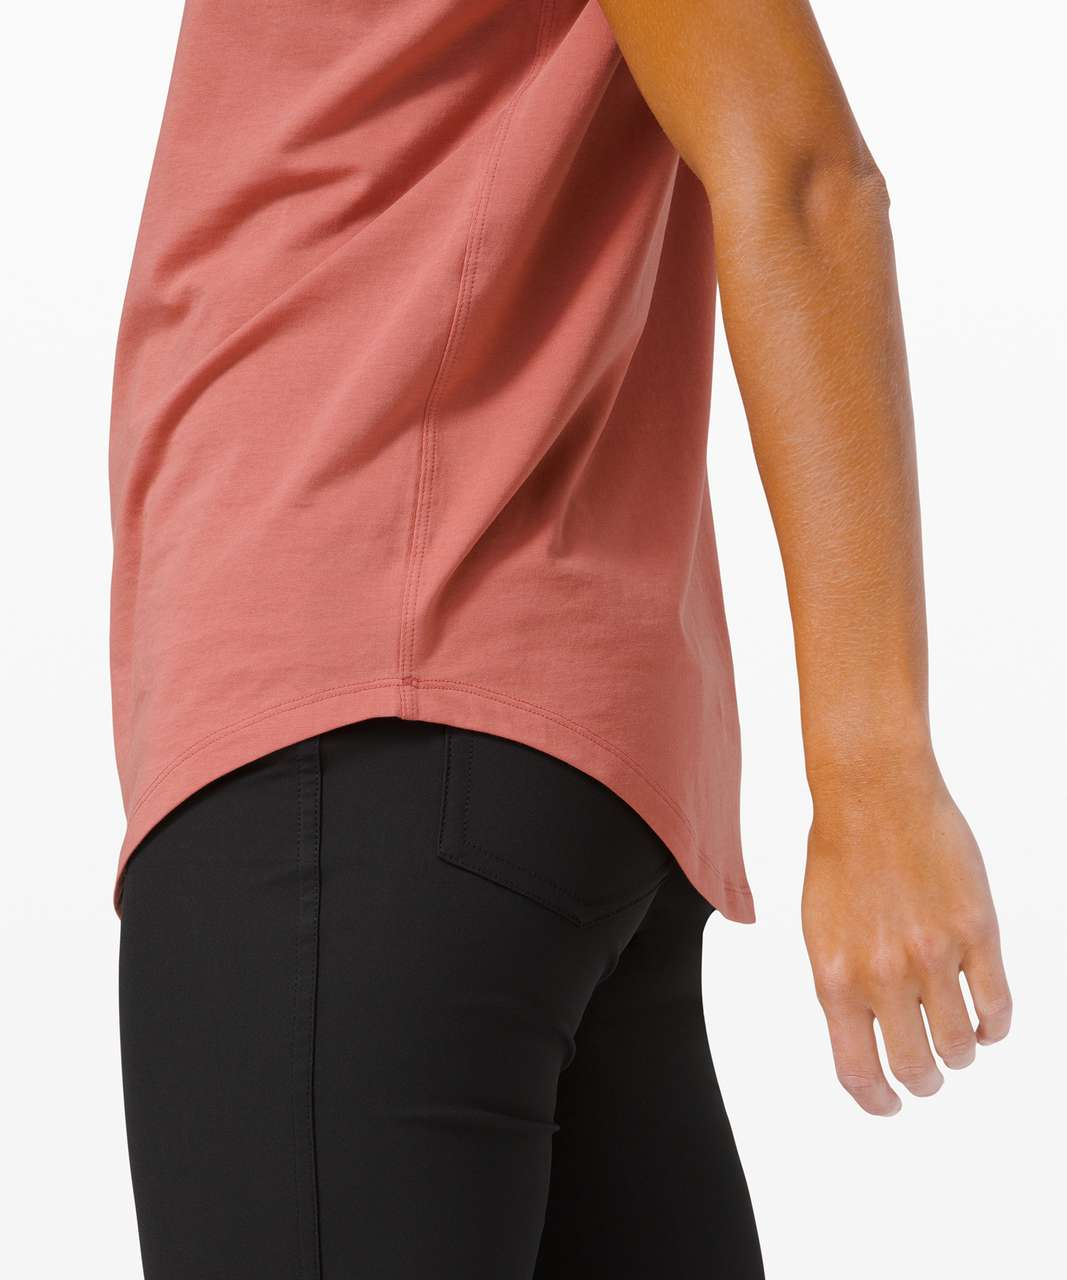 Lululemon Brunswick Muscle Tank - Brier Rose